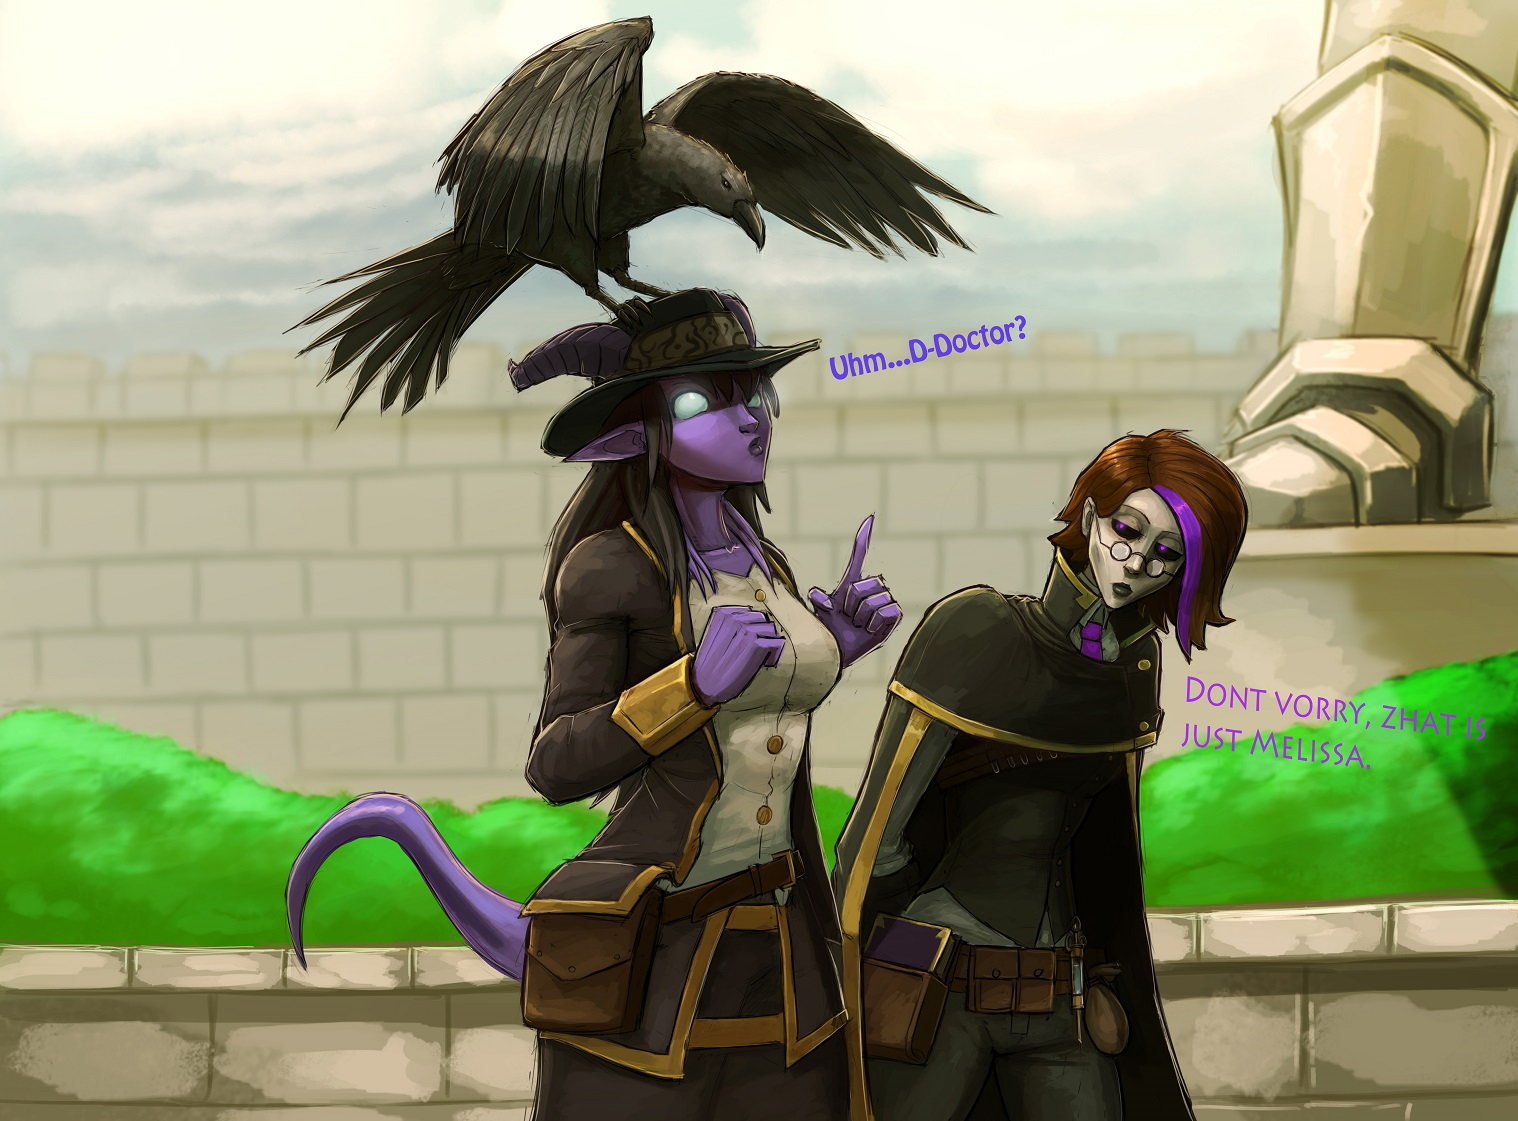 A Doctors Crow and her assistant